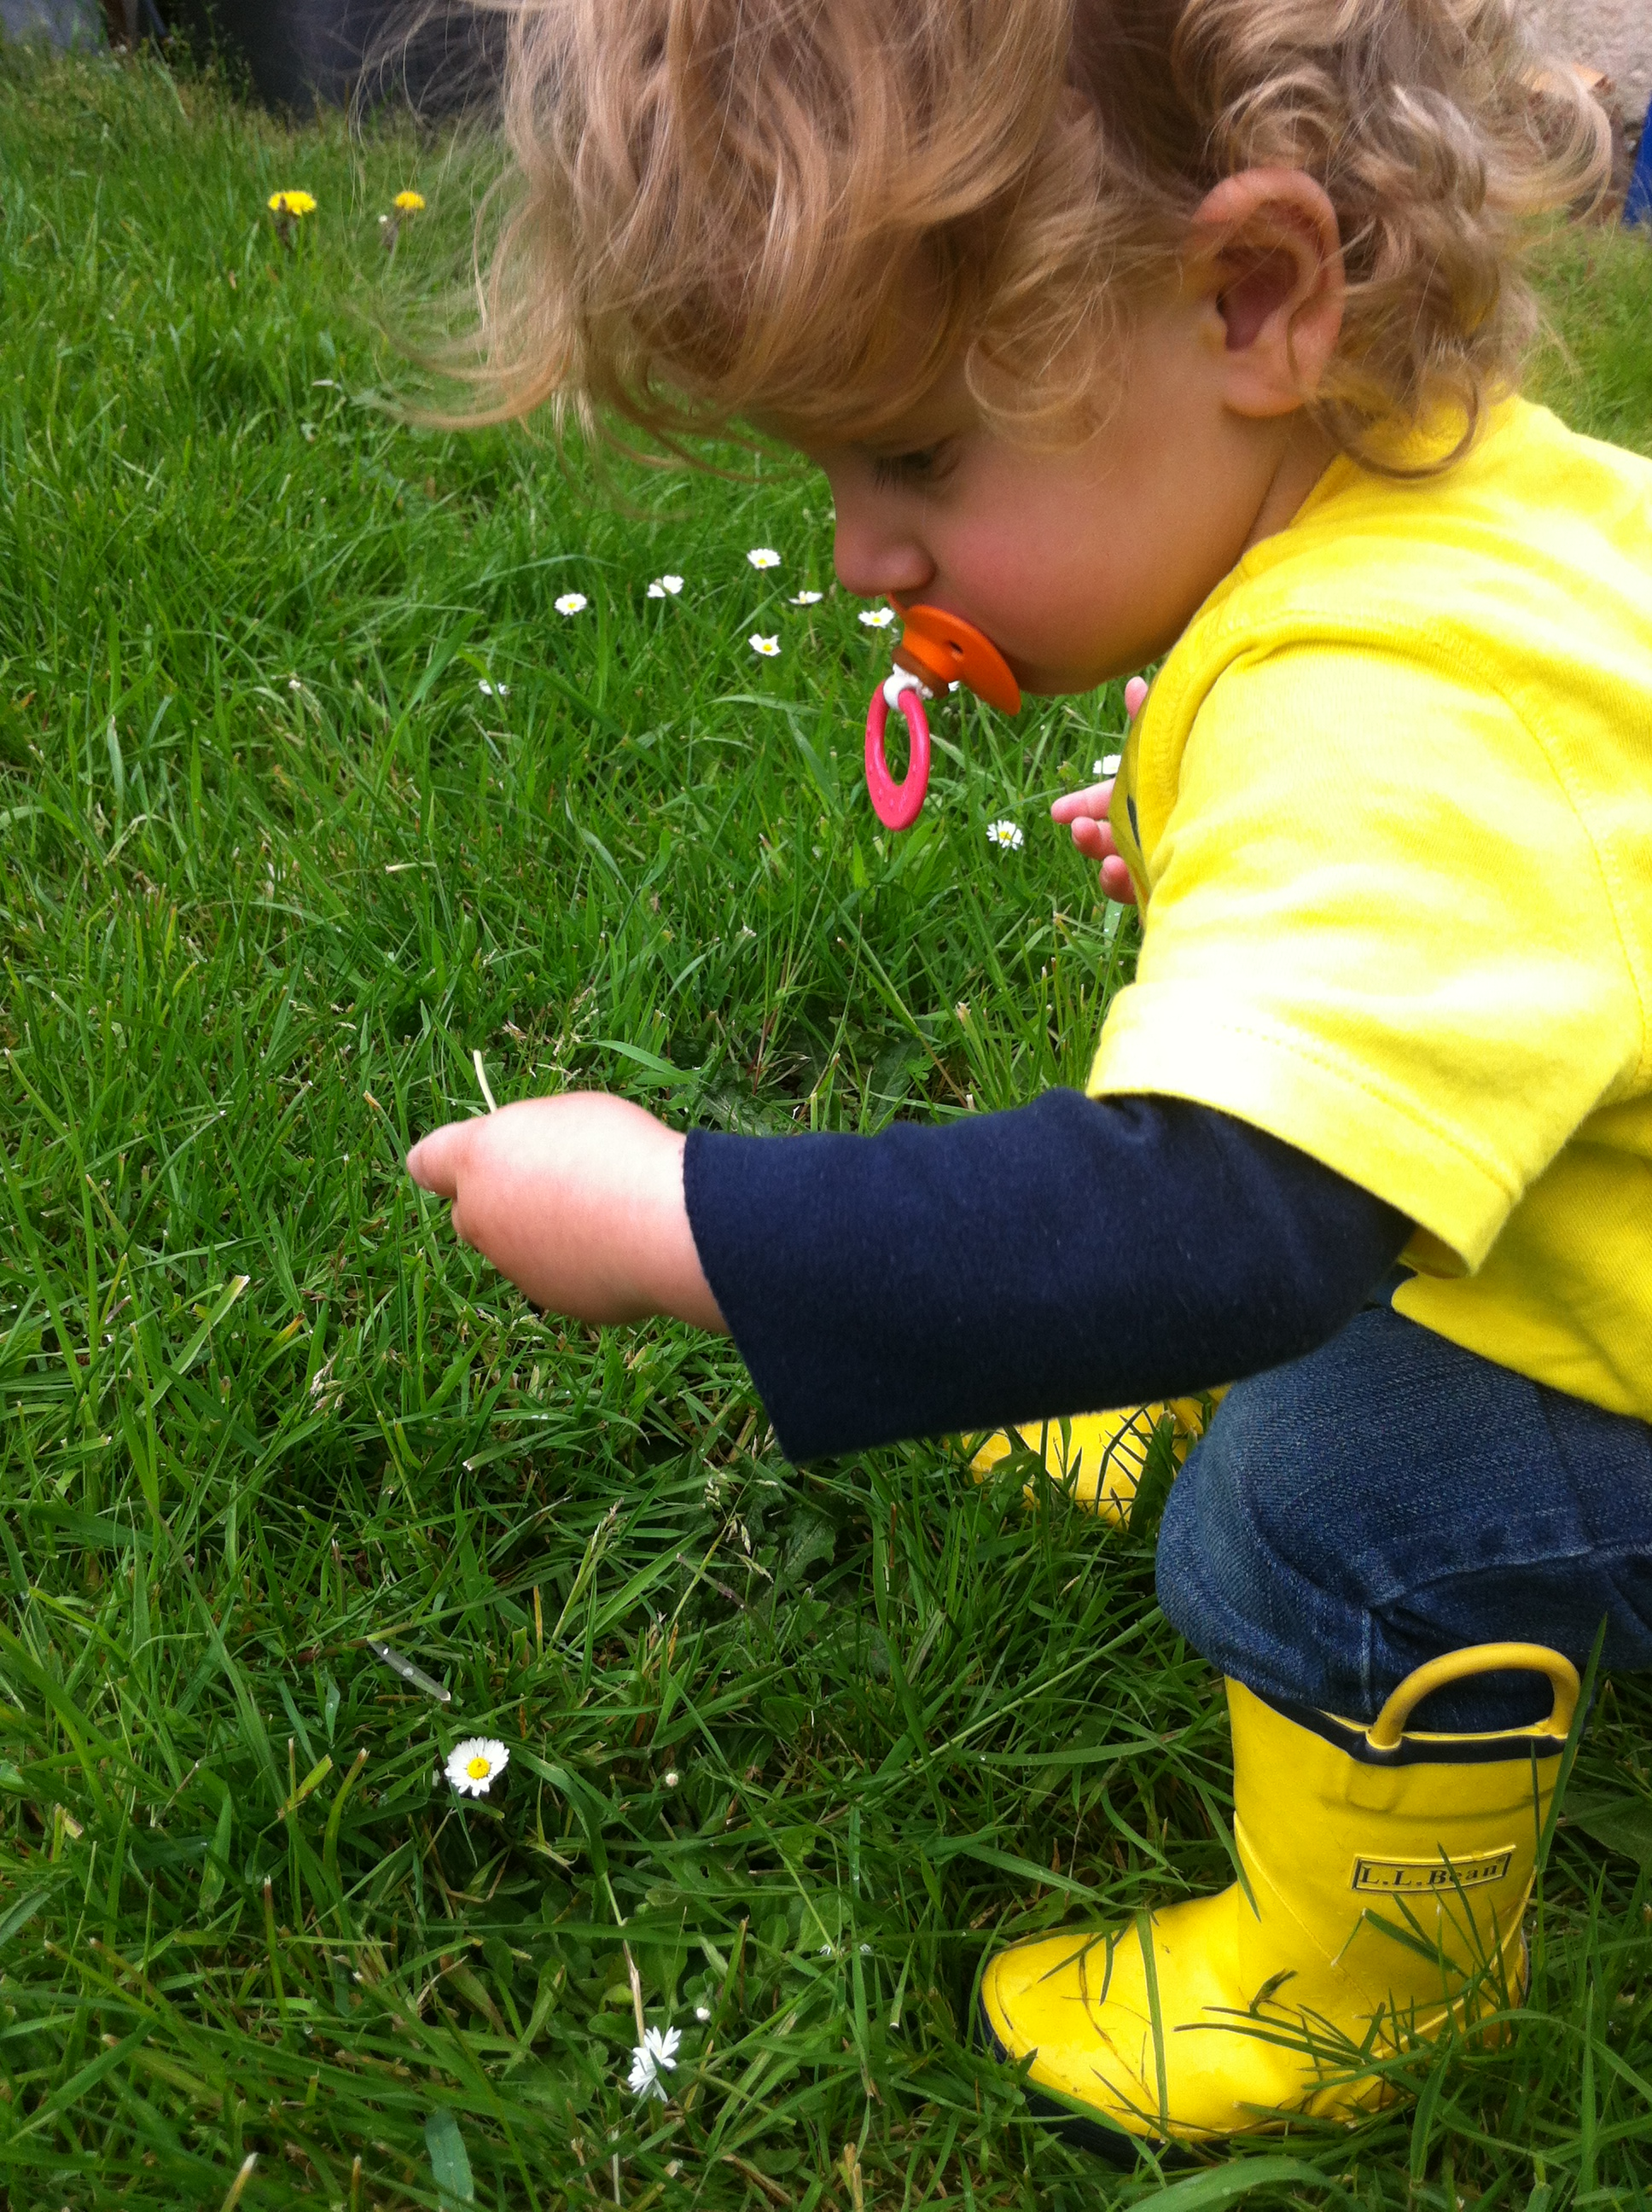 Liam attacks the daisies.